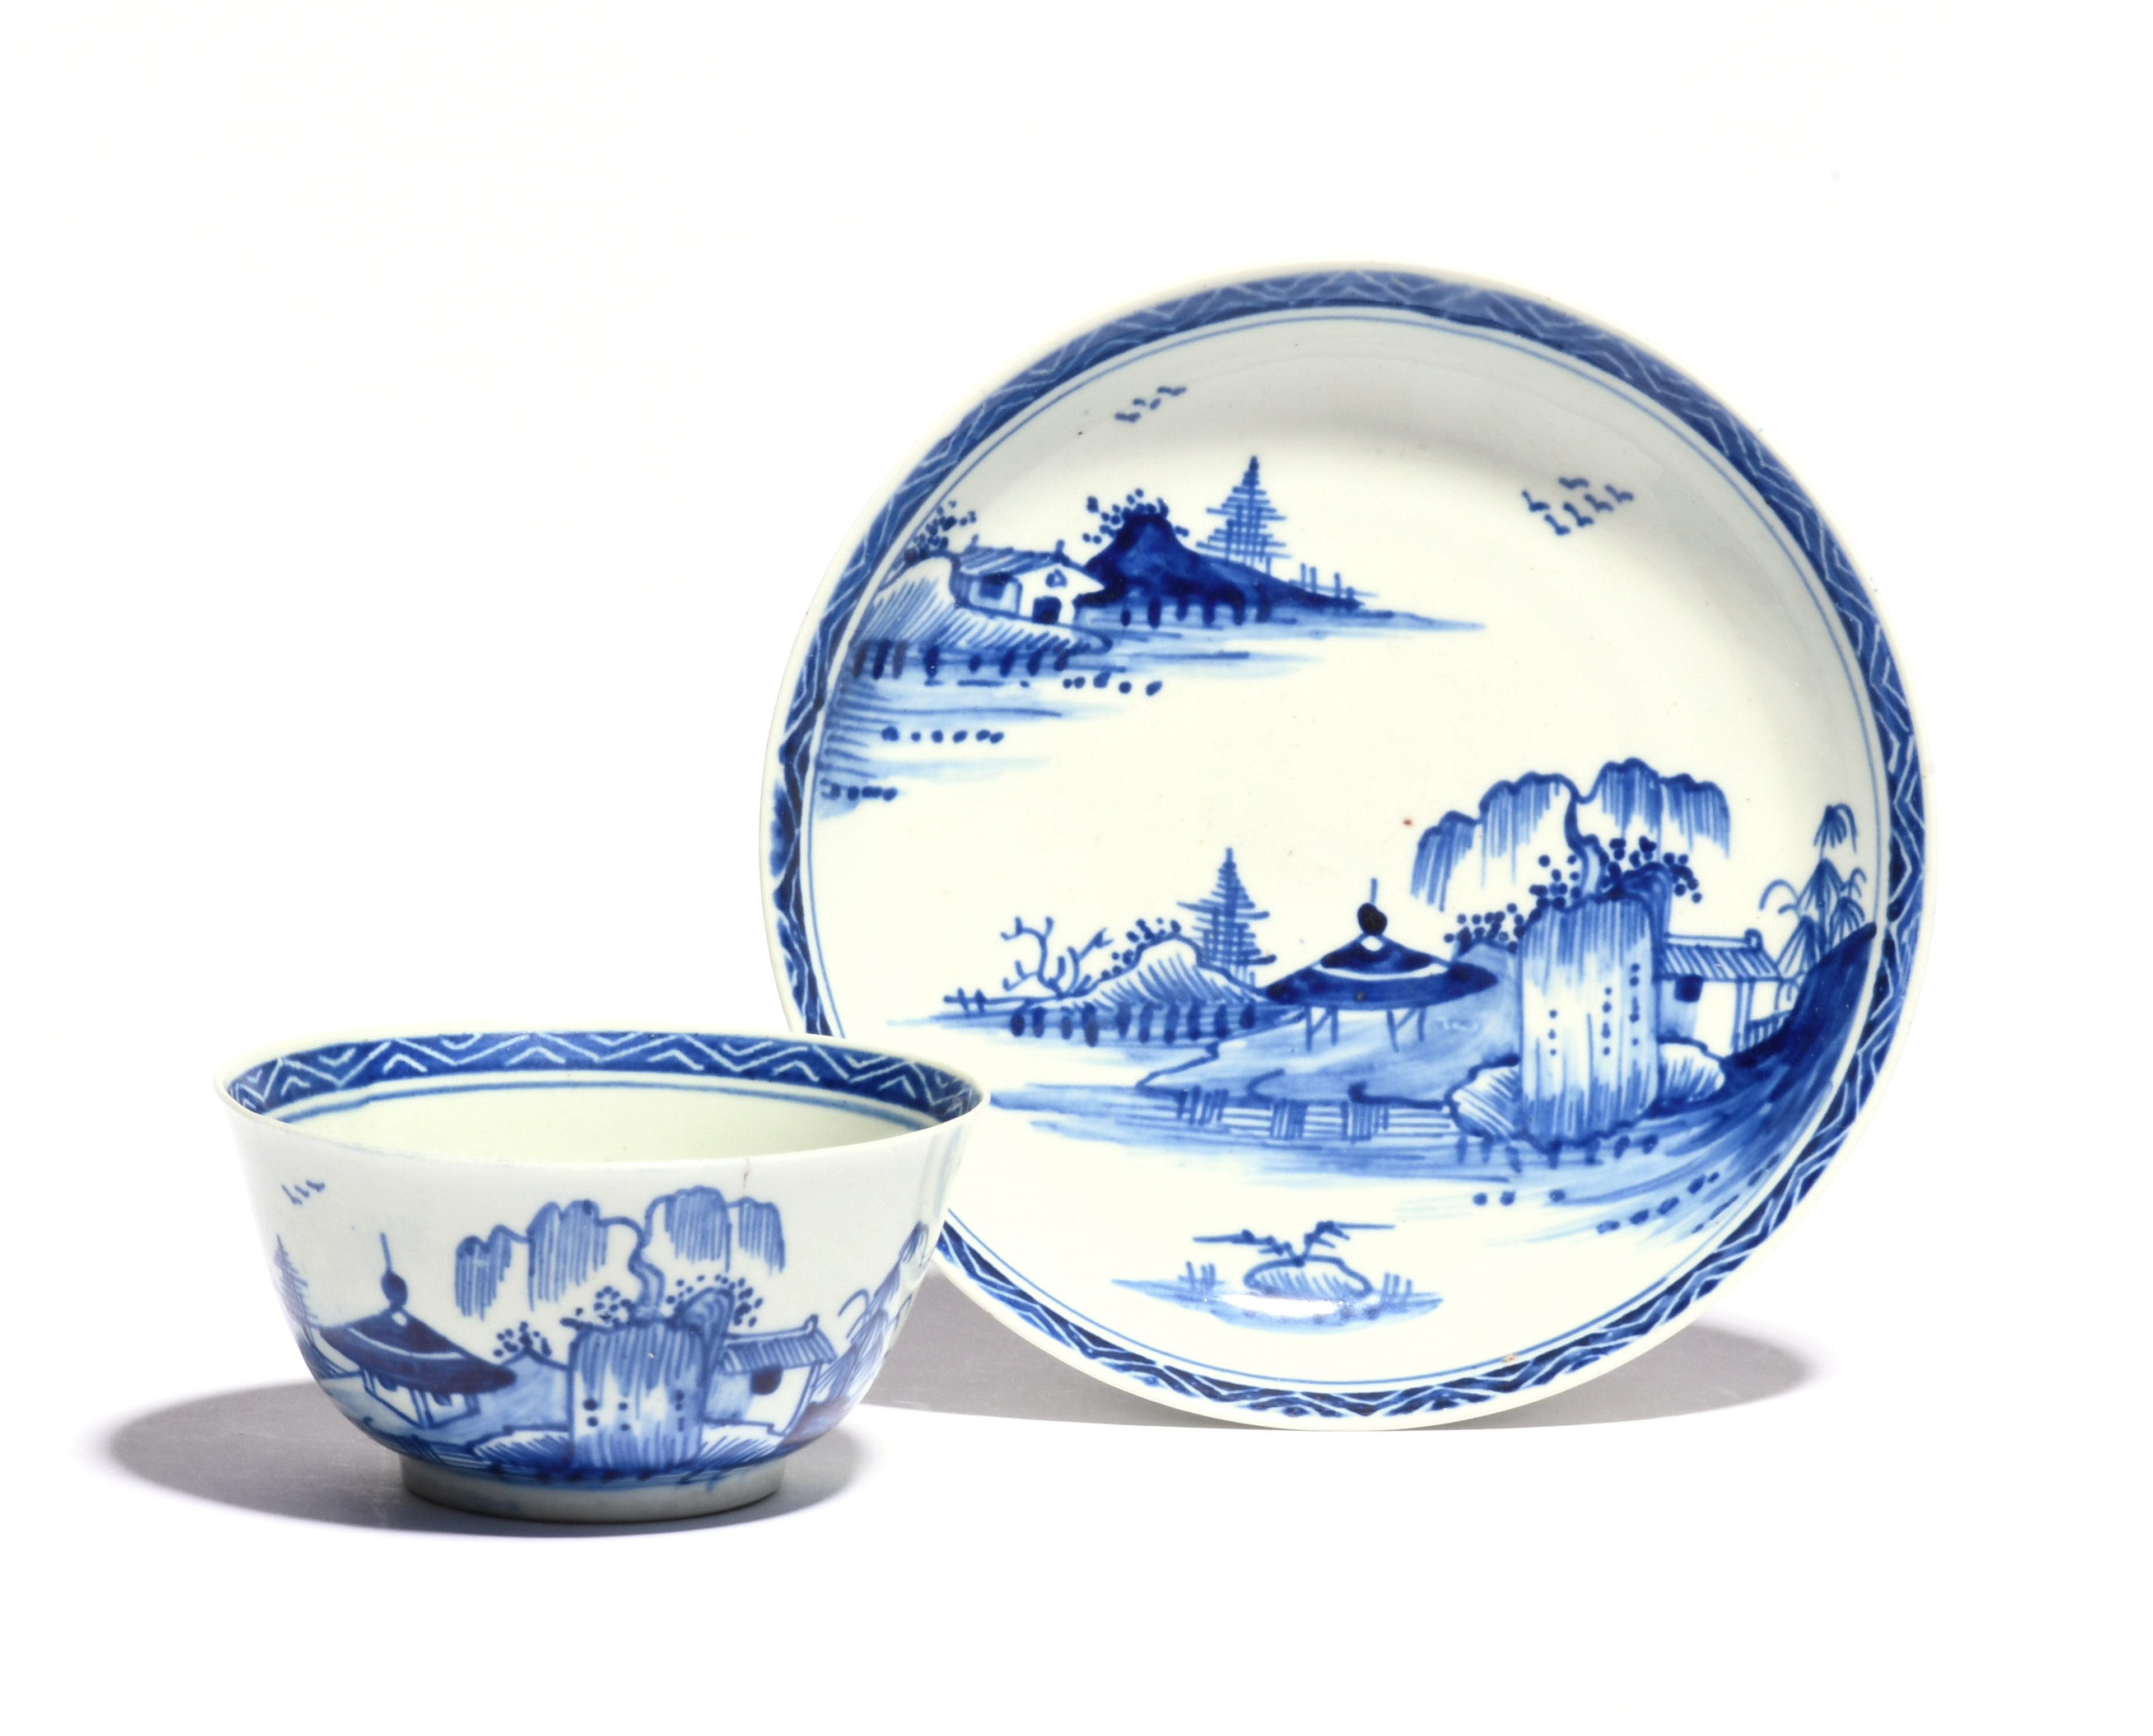 A Vauxhall blue and white teabowl and saucer c.1755-60, painted with low huts beneath willow in a